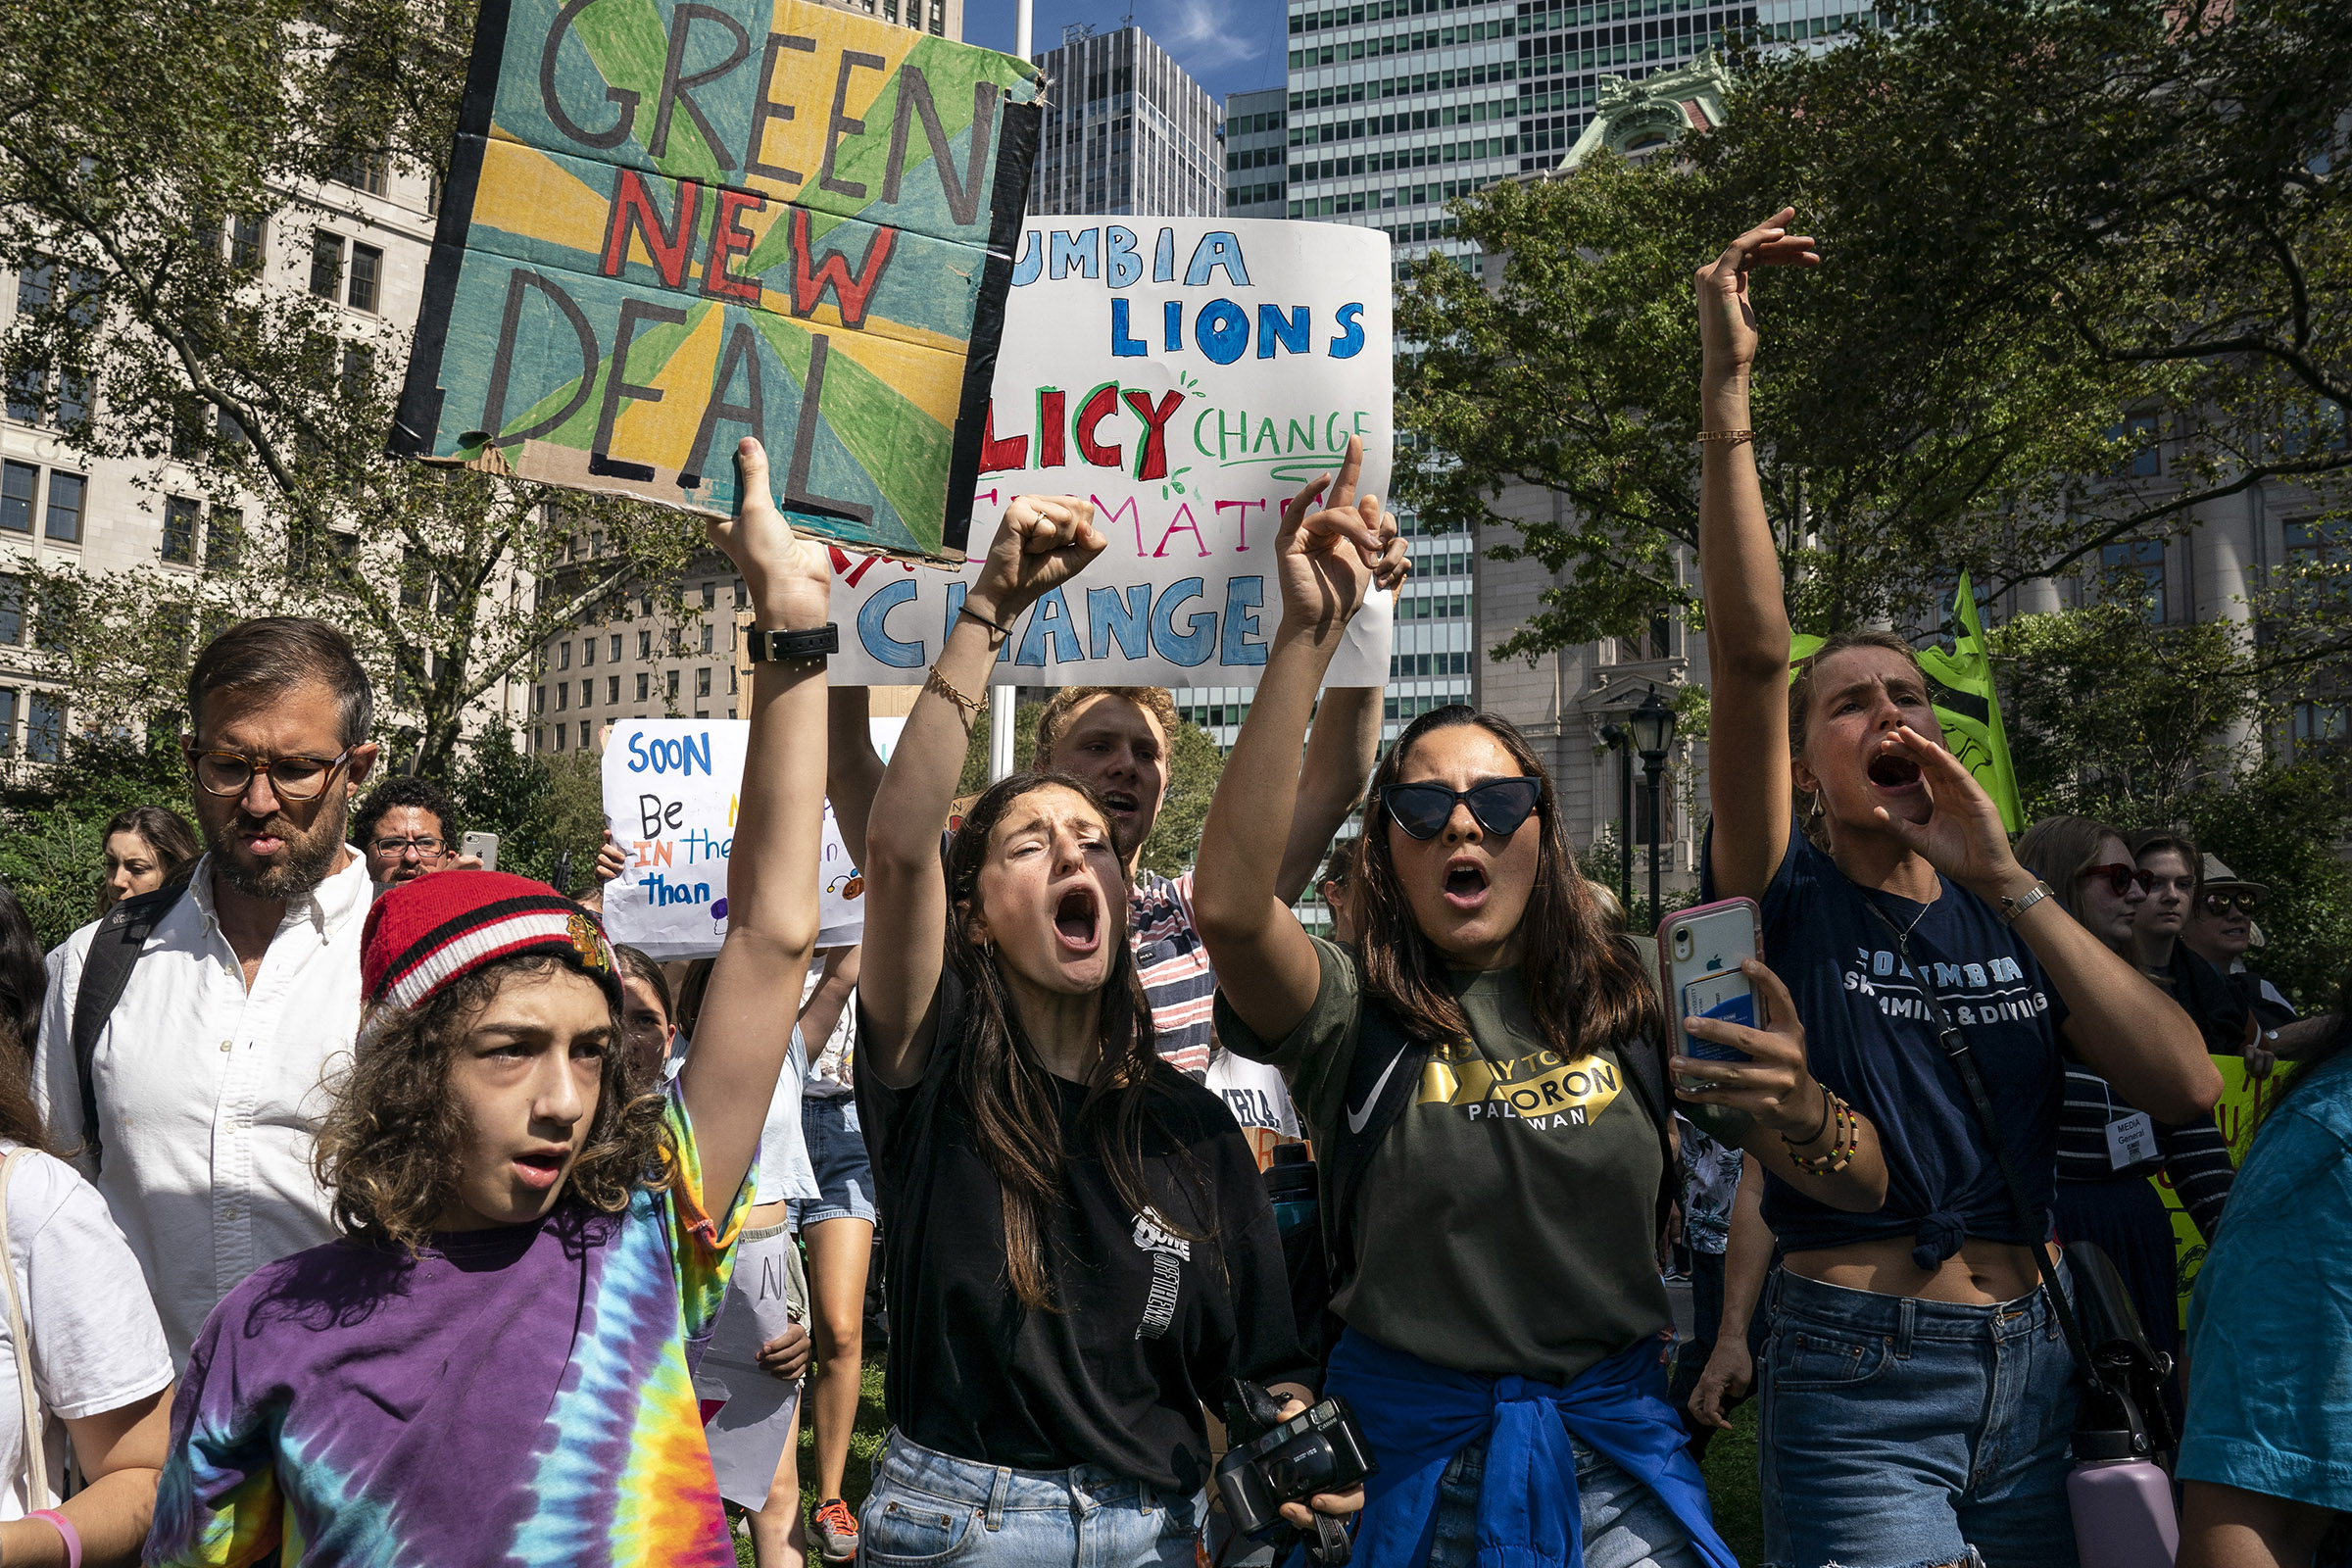 Young activists and their supporters rally for action on climate change on September 20, 2019 in New York City.